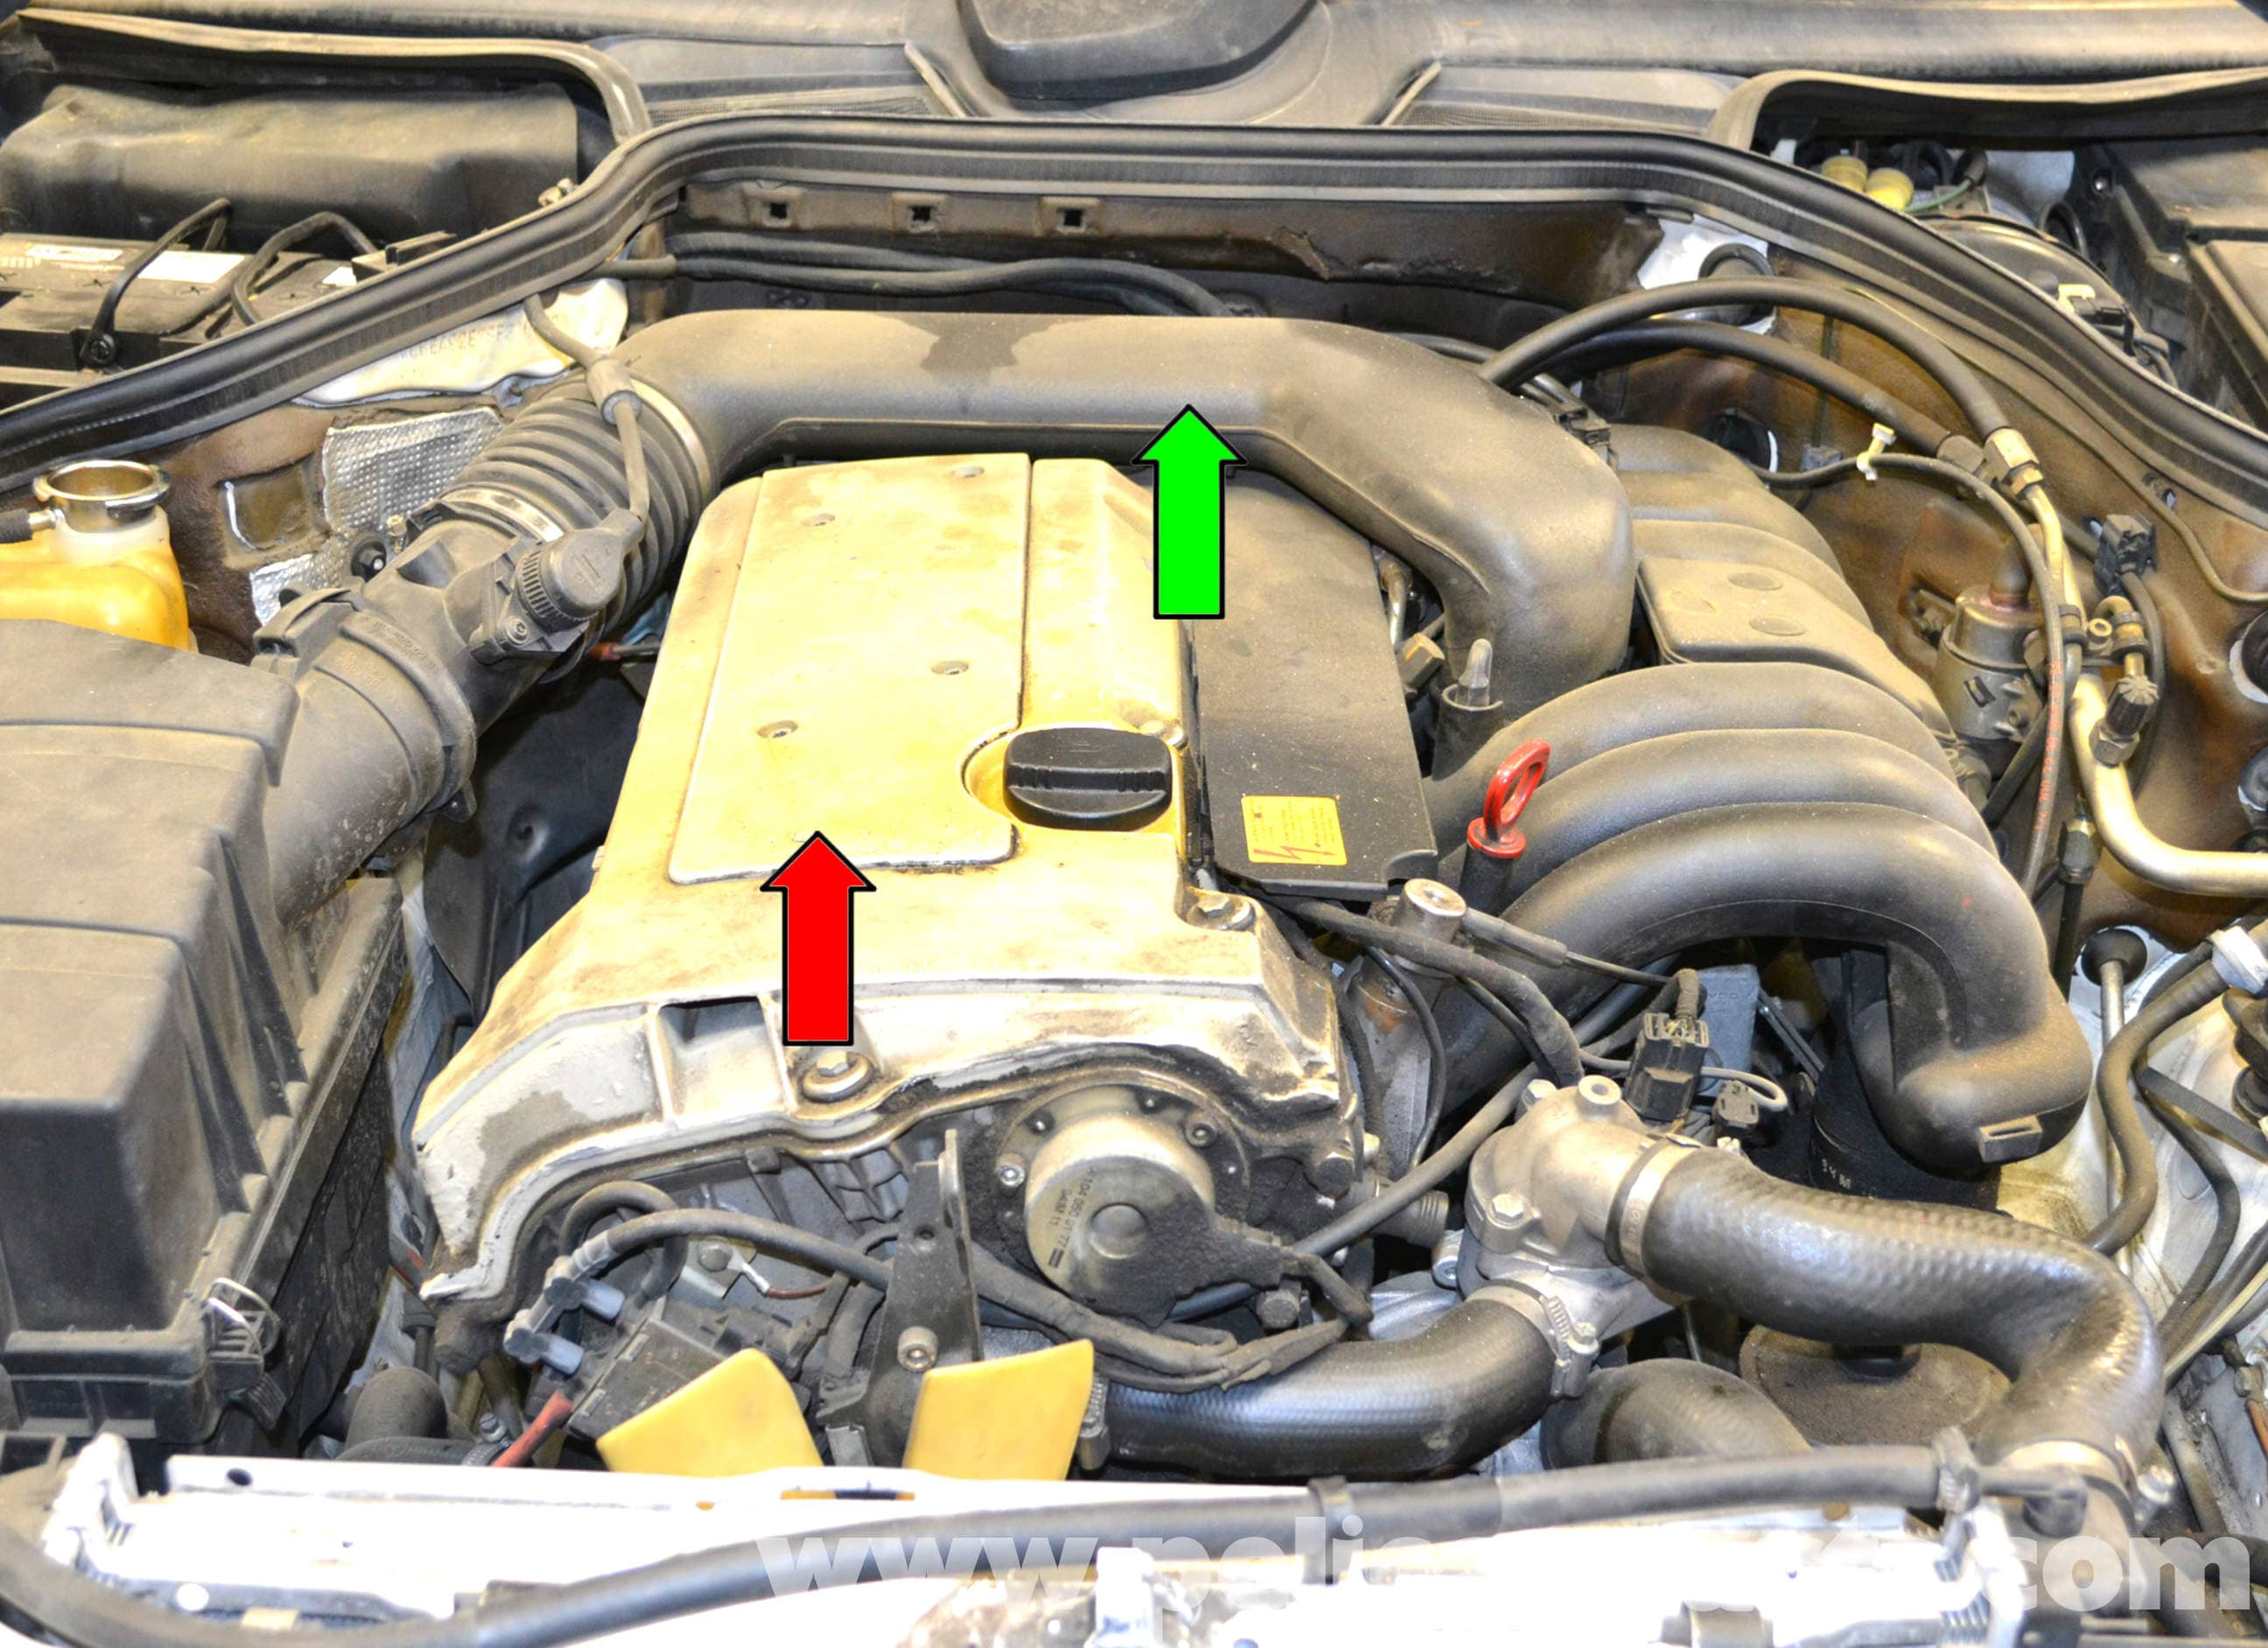 chilton 1996 mercedes e320 engine diagram wiring diagram detailed 1999 Volvo S70 Engine Diagram mercedes e320 engine diagram wiring diagrams mercedes benz 1999 e320 engine diagram chilton 1996 mercedes e320 engine diagram